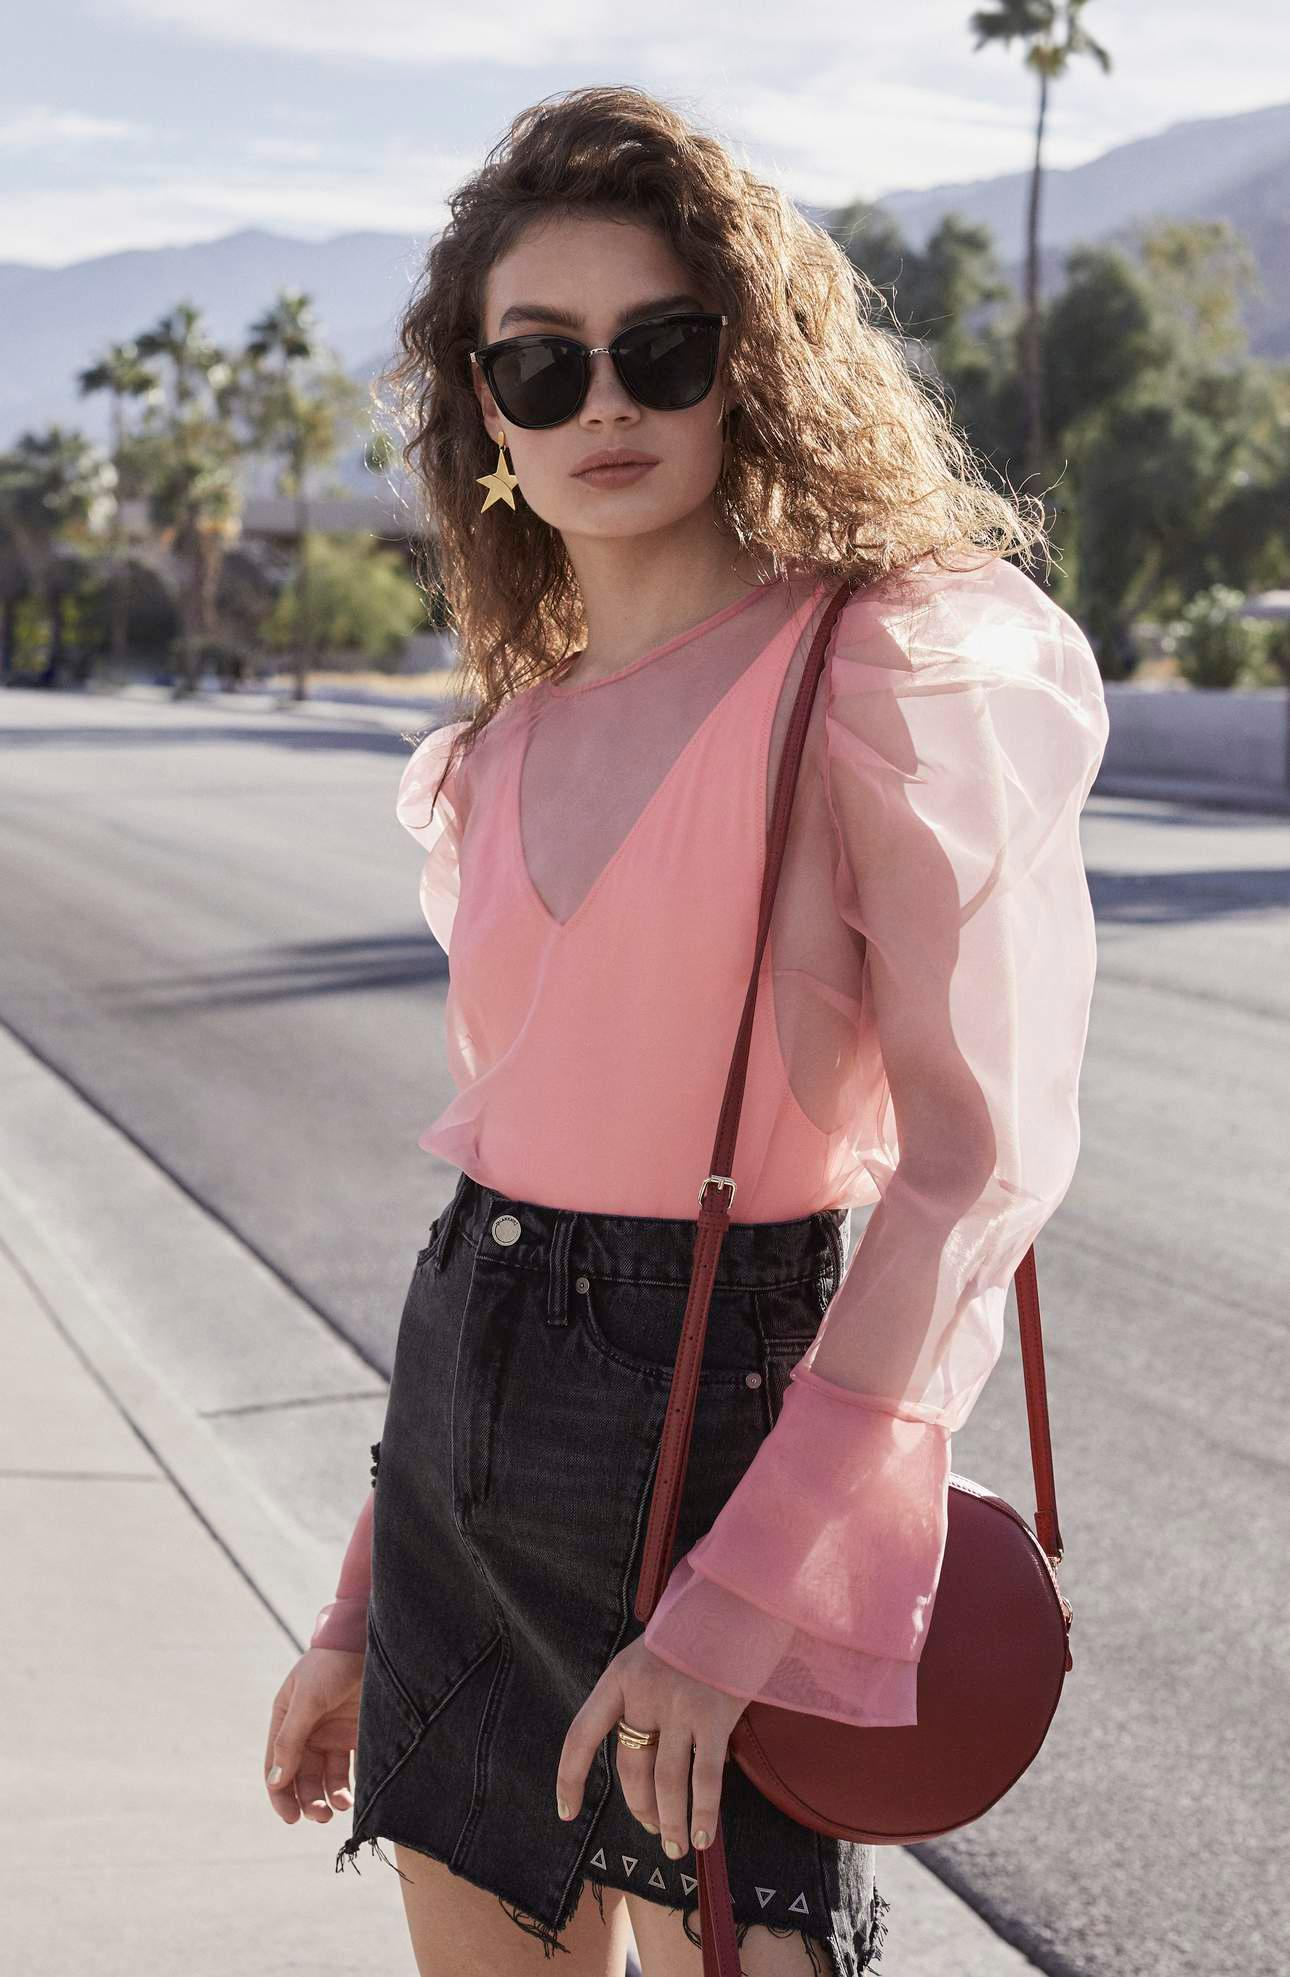 Romantic dressing gets assertive for spring. Florals are bright, silhouettes are cropped, and distressed denim goes high shine. Even the season's hottest round bag is declaring itself. Go BOLD or go home this Spring!!!! (Image: Nordstrom){&nbsp;}<p></p>